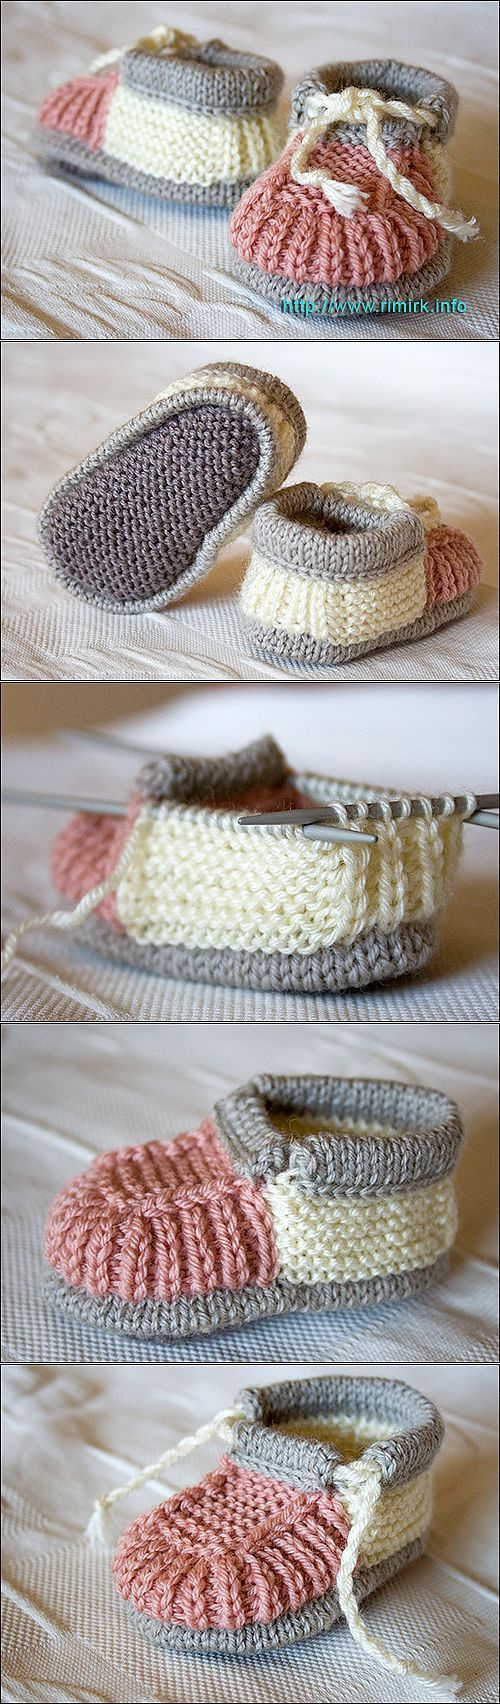 415 best Knitted baby images on Pinterest | Knitted baby, Baby knits ...